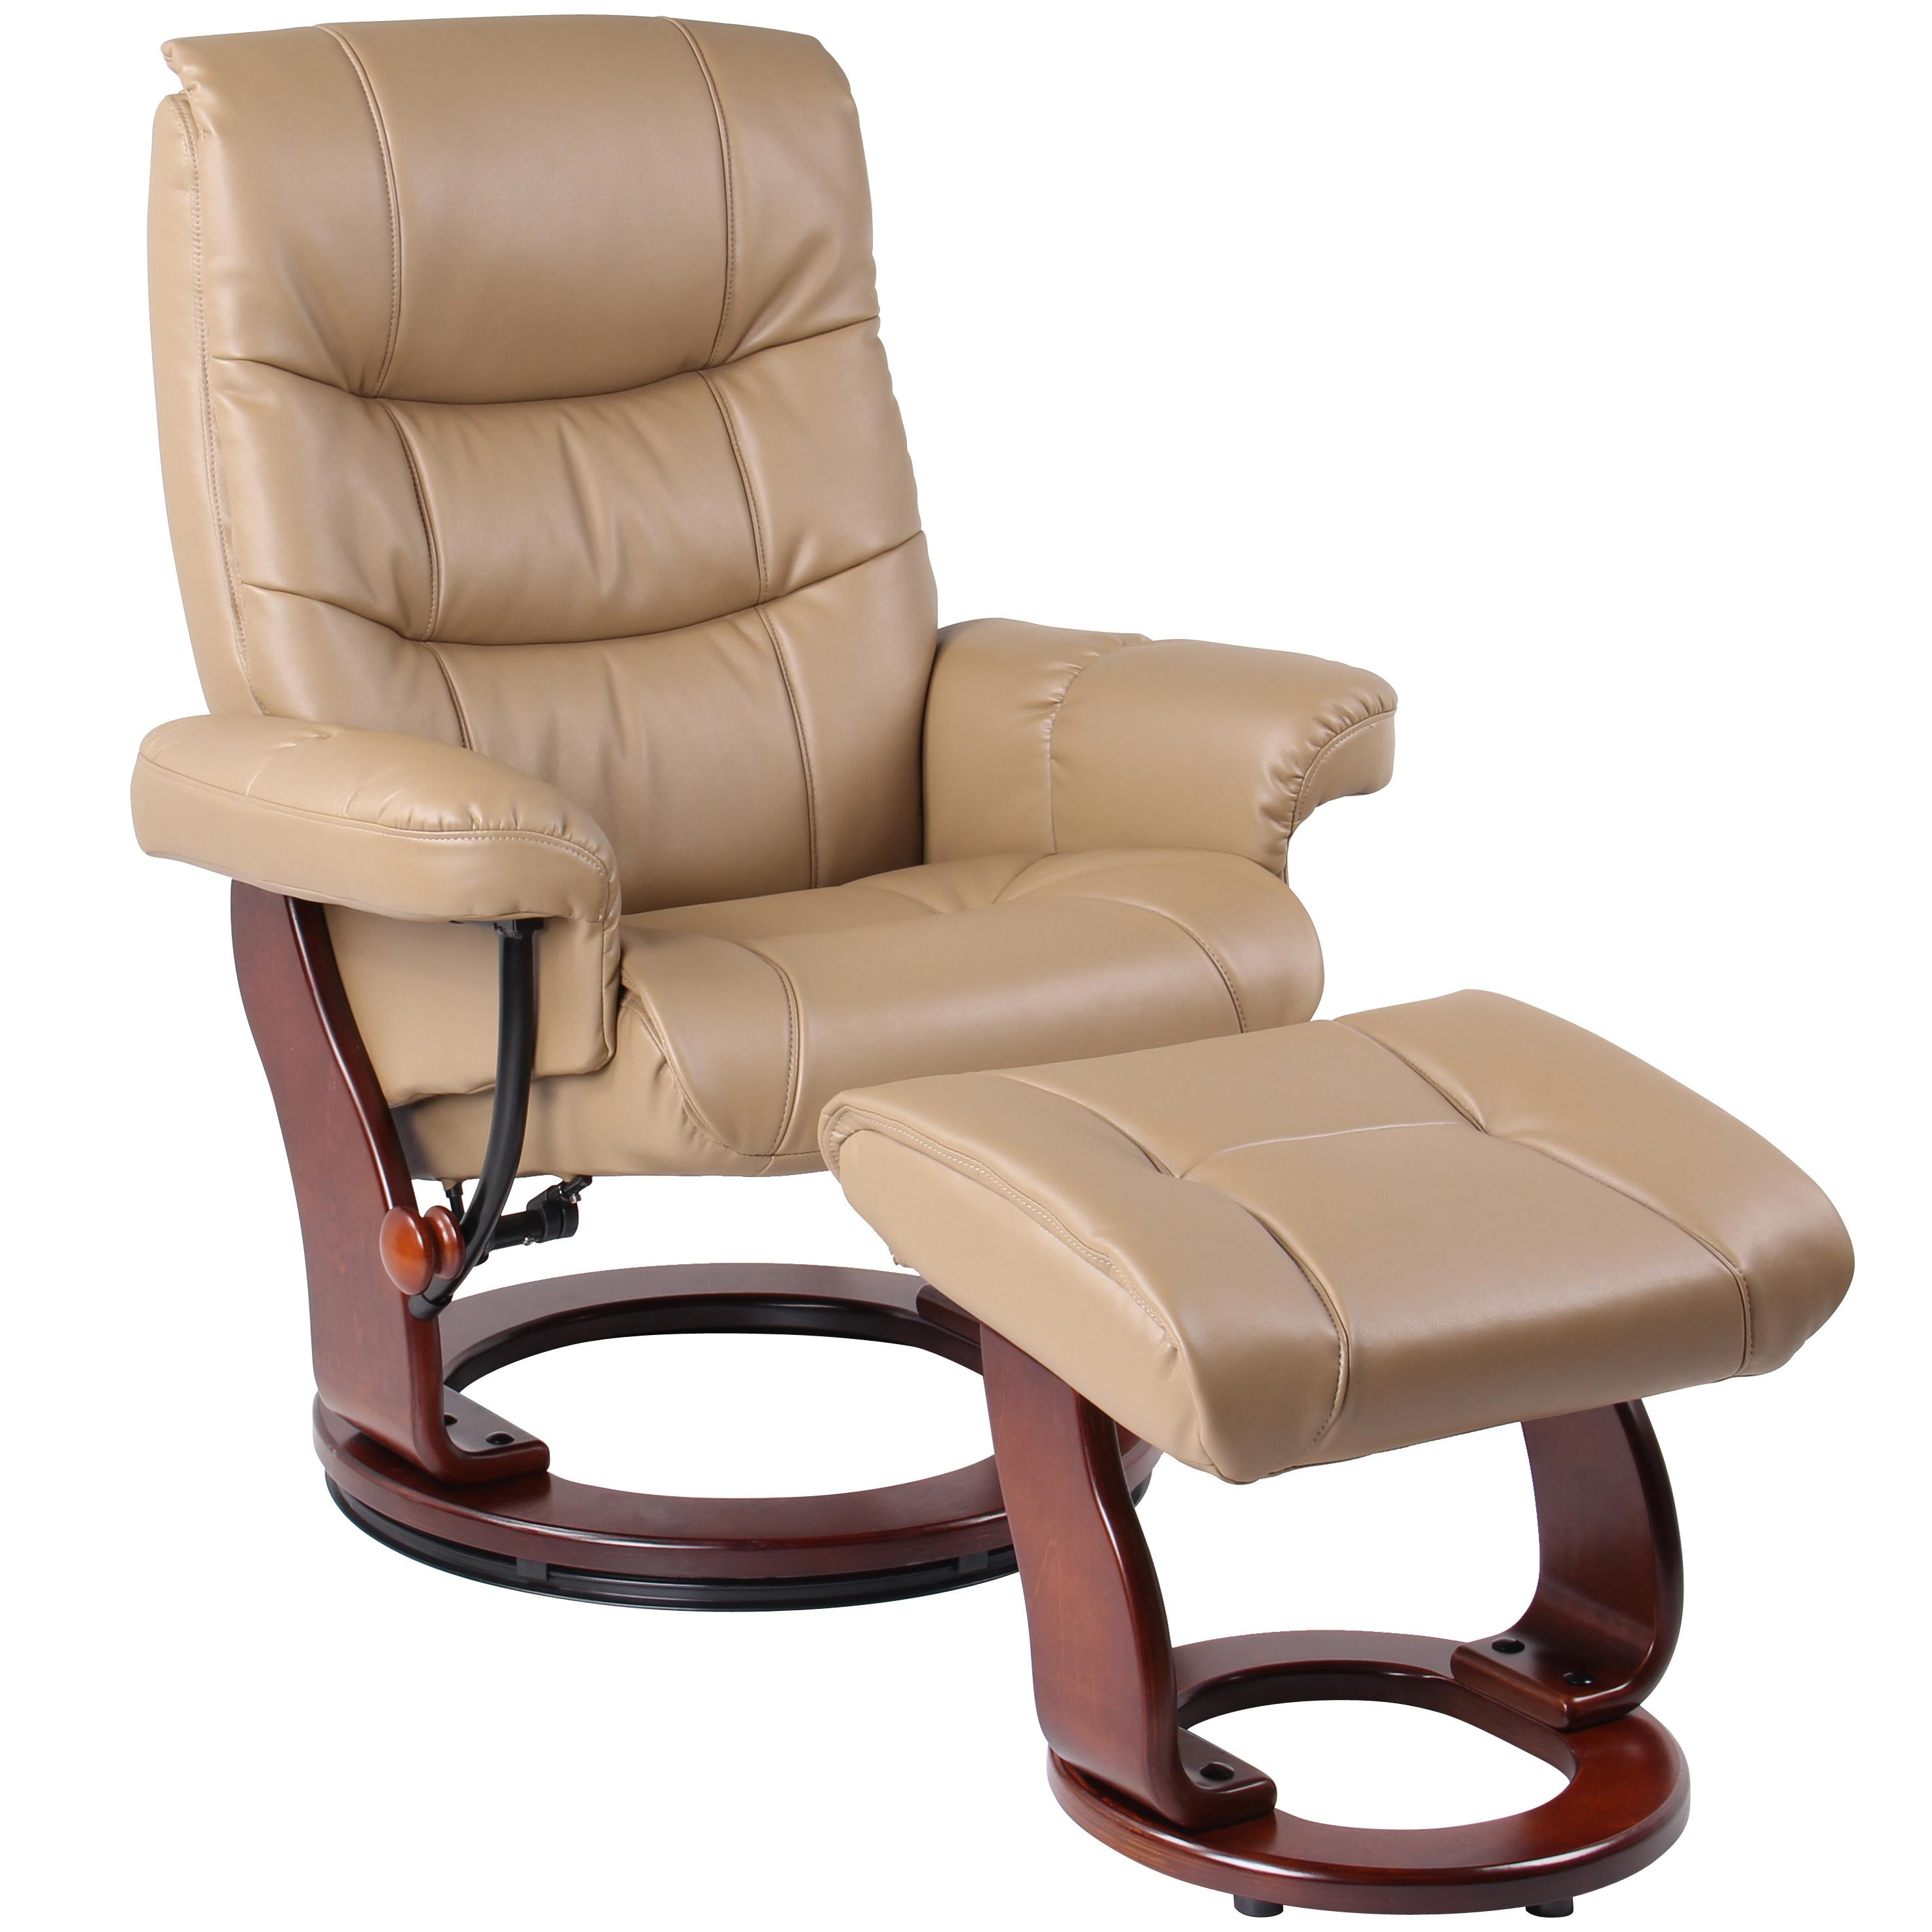 Benchmaster Rosa Rosa Lounger - Item Number: 7583D Brown Sugar